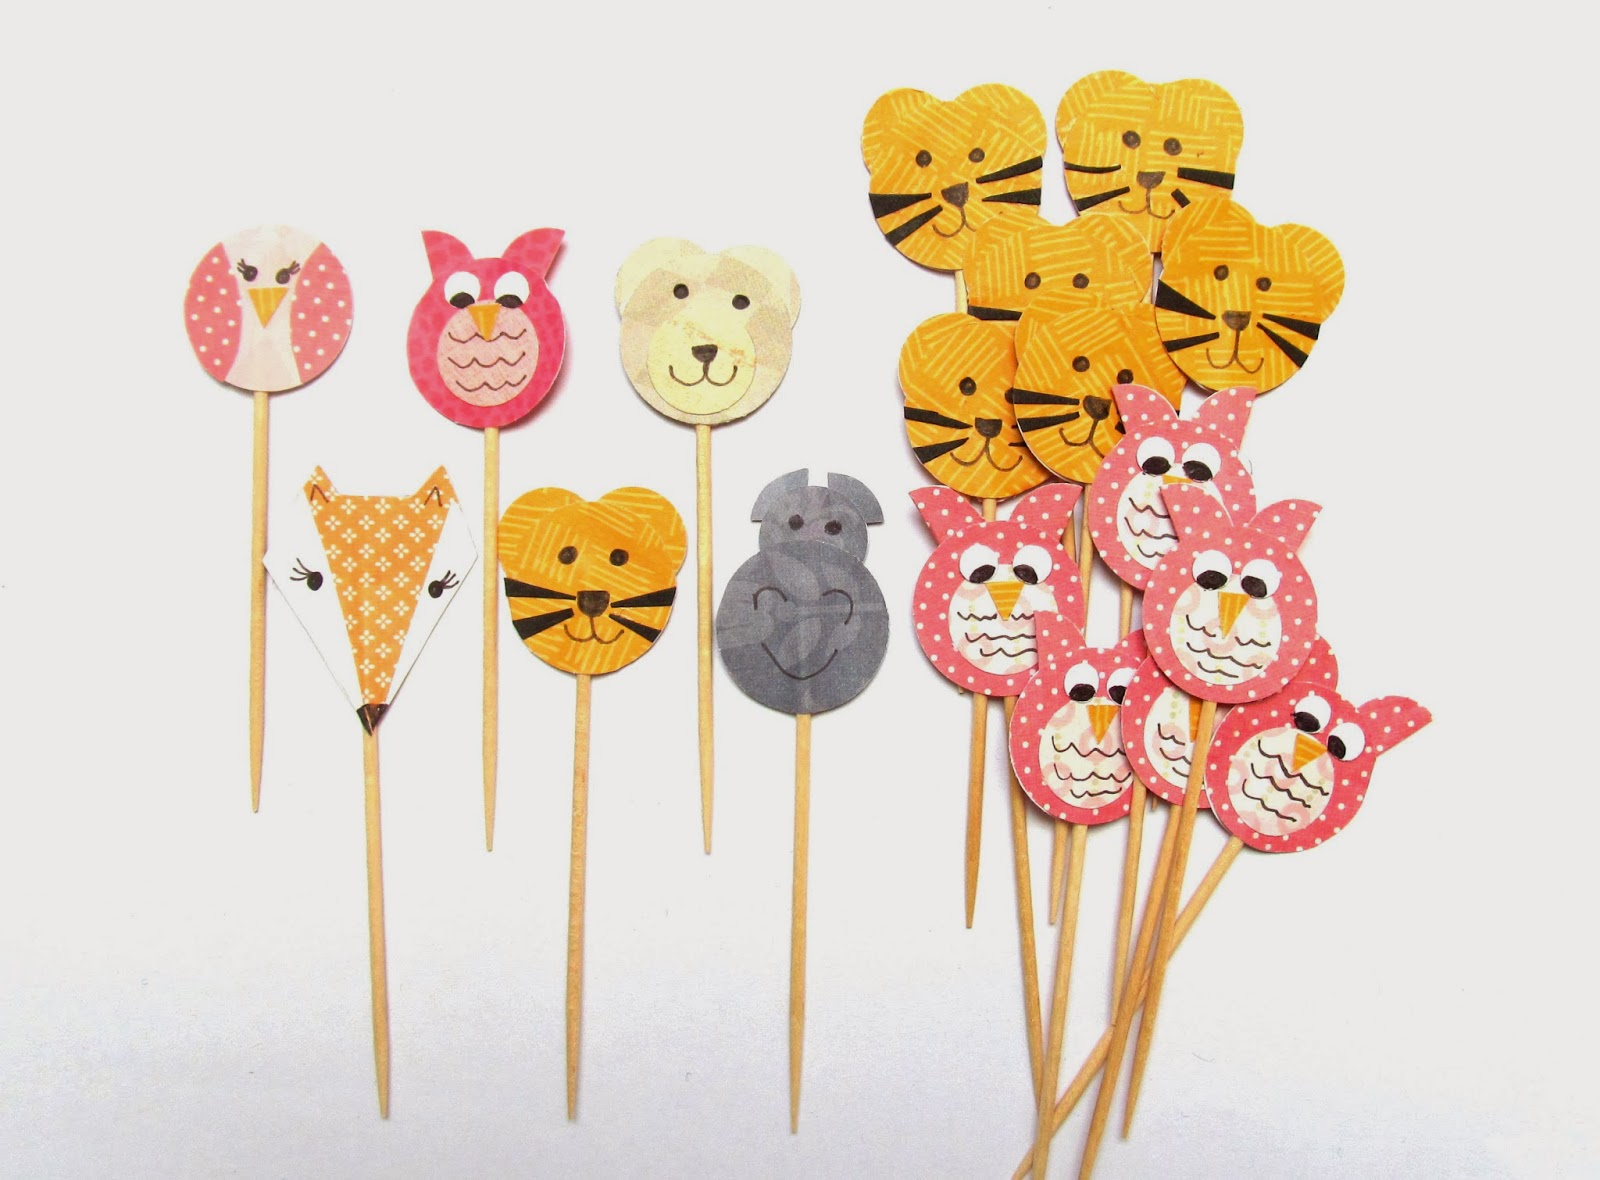 Cute animal cupcake toppers by Pink Flamingo Handcrafting